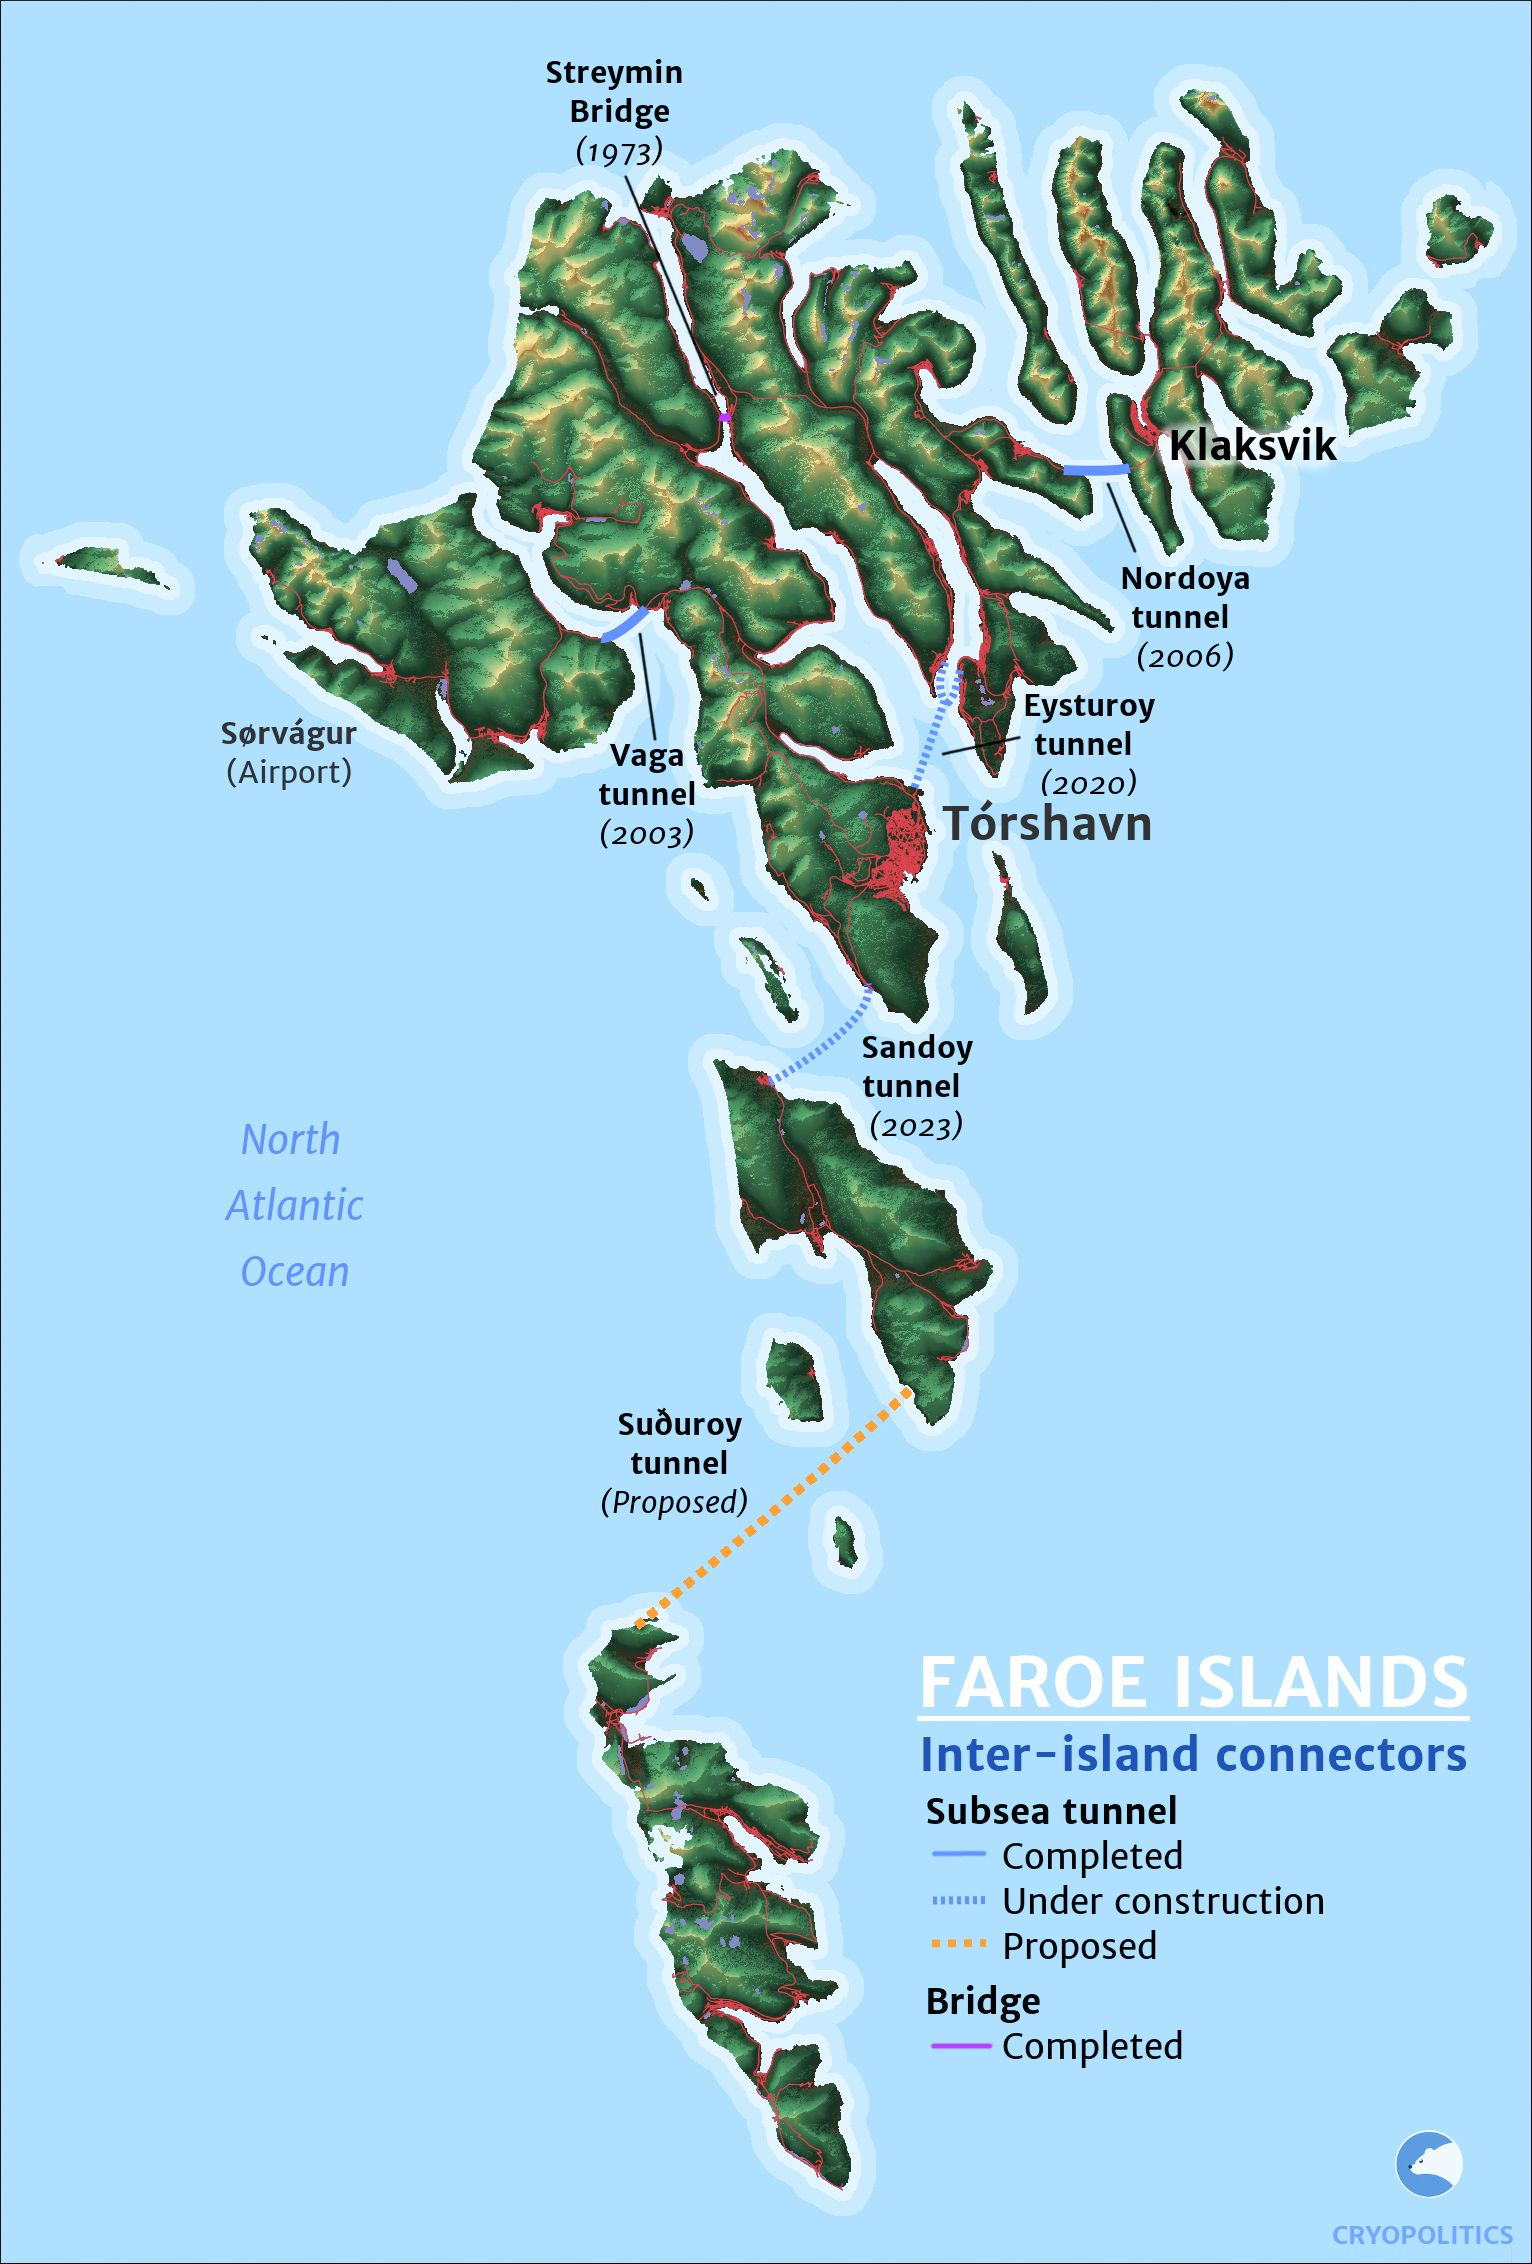 A map of bridges and subsea tunnels in the Faroes. Map by ©Cryopolitics.